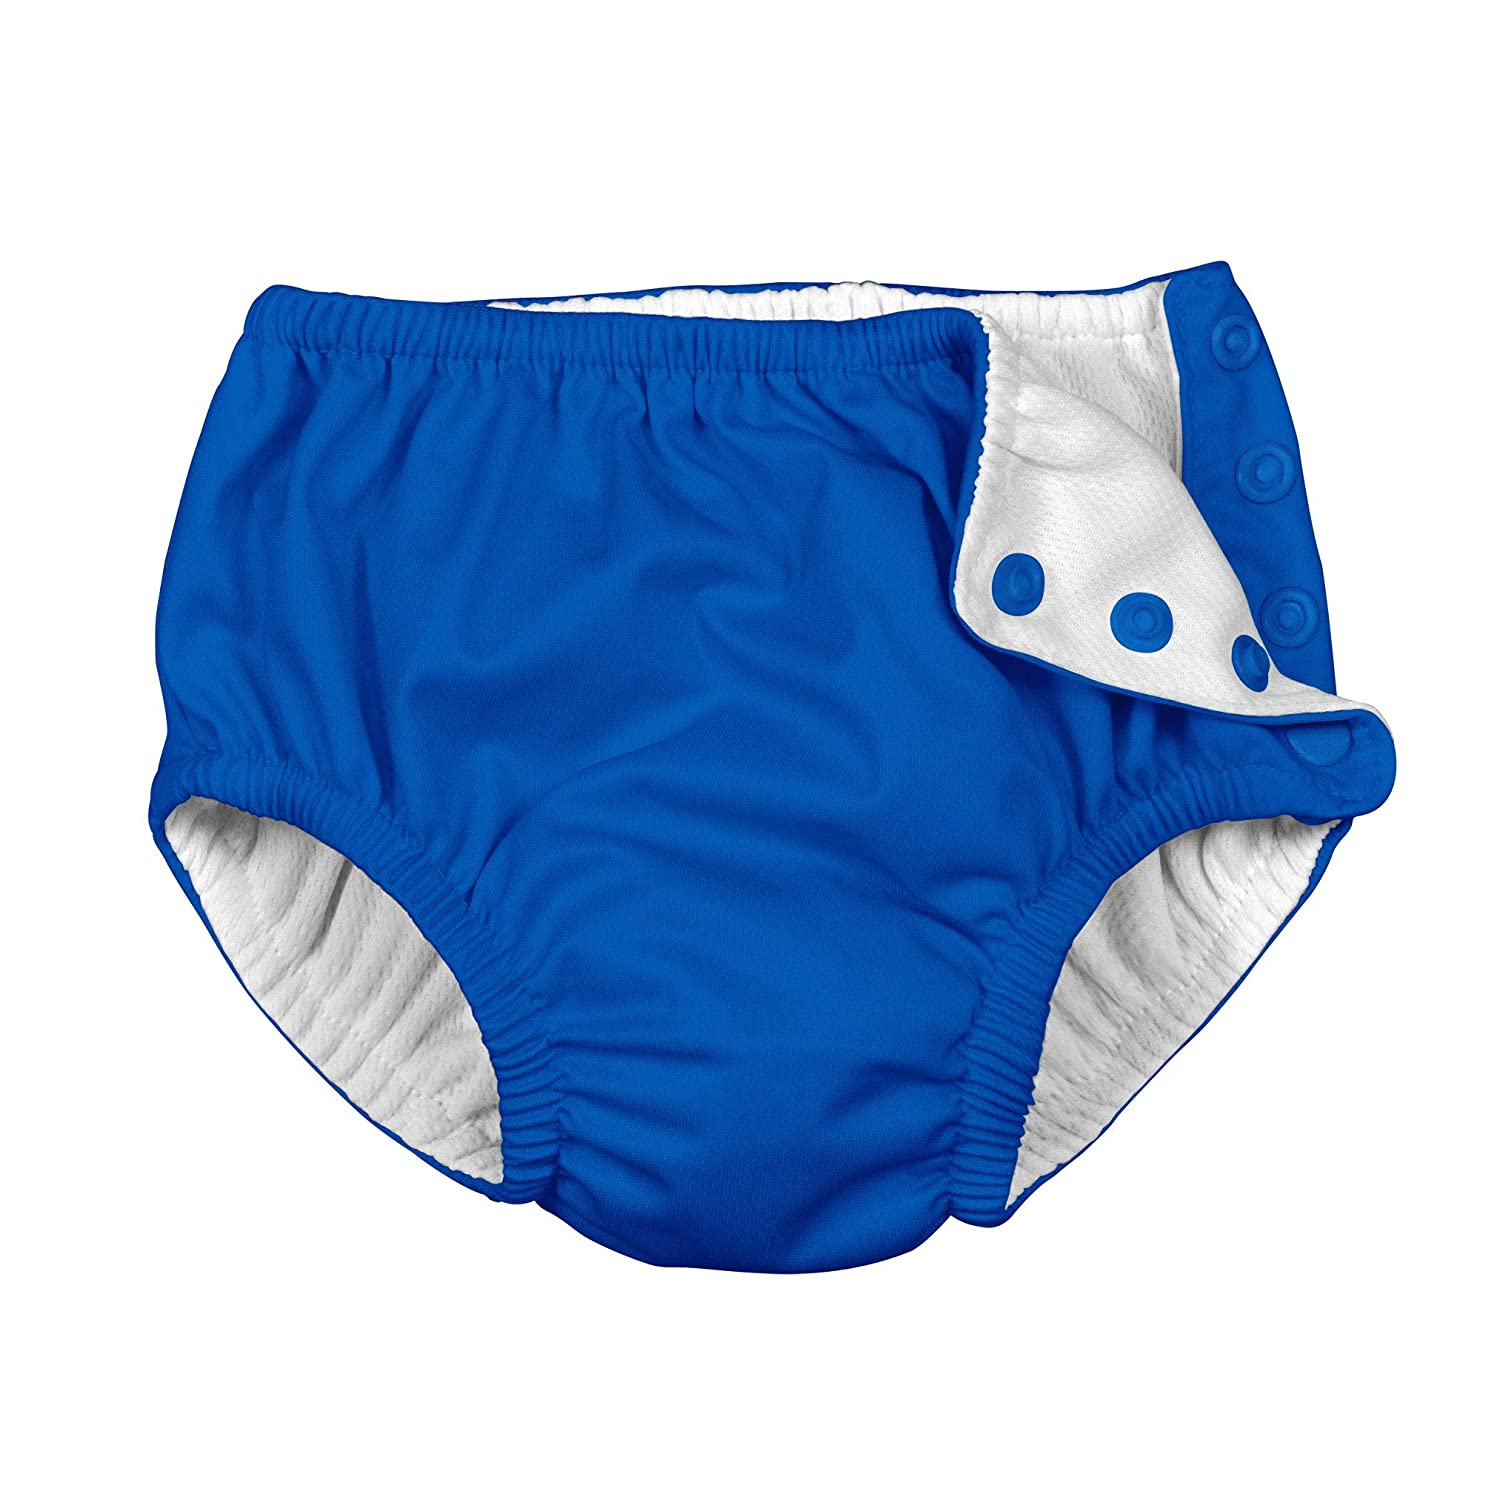 Iplay Swimsuit Diaper-Royal Blue-4T IPlay Baby 721200-608-48